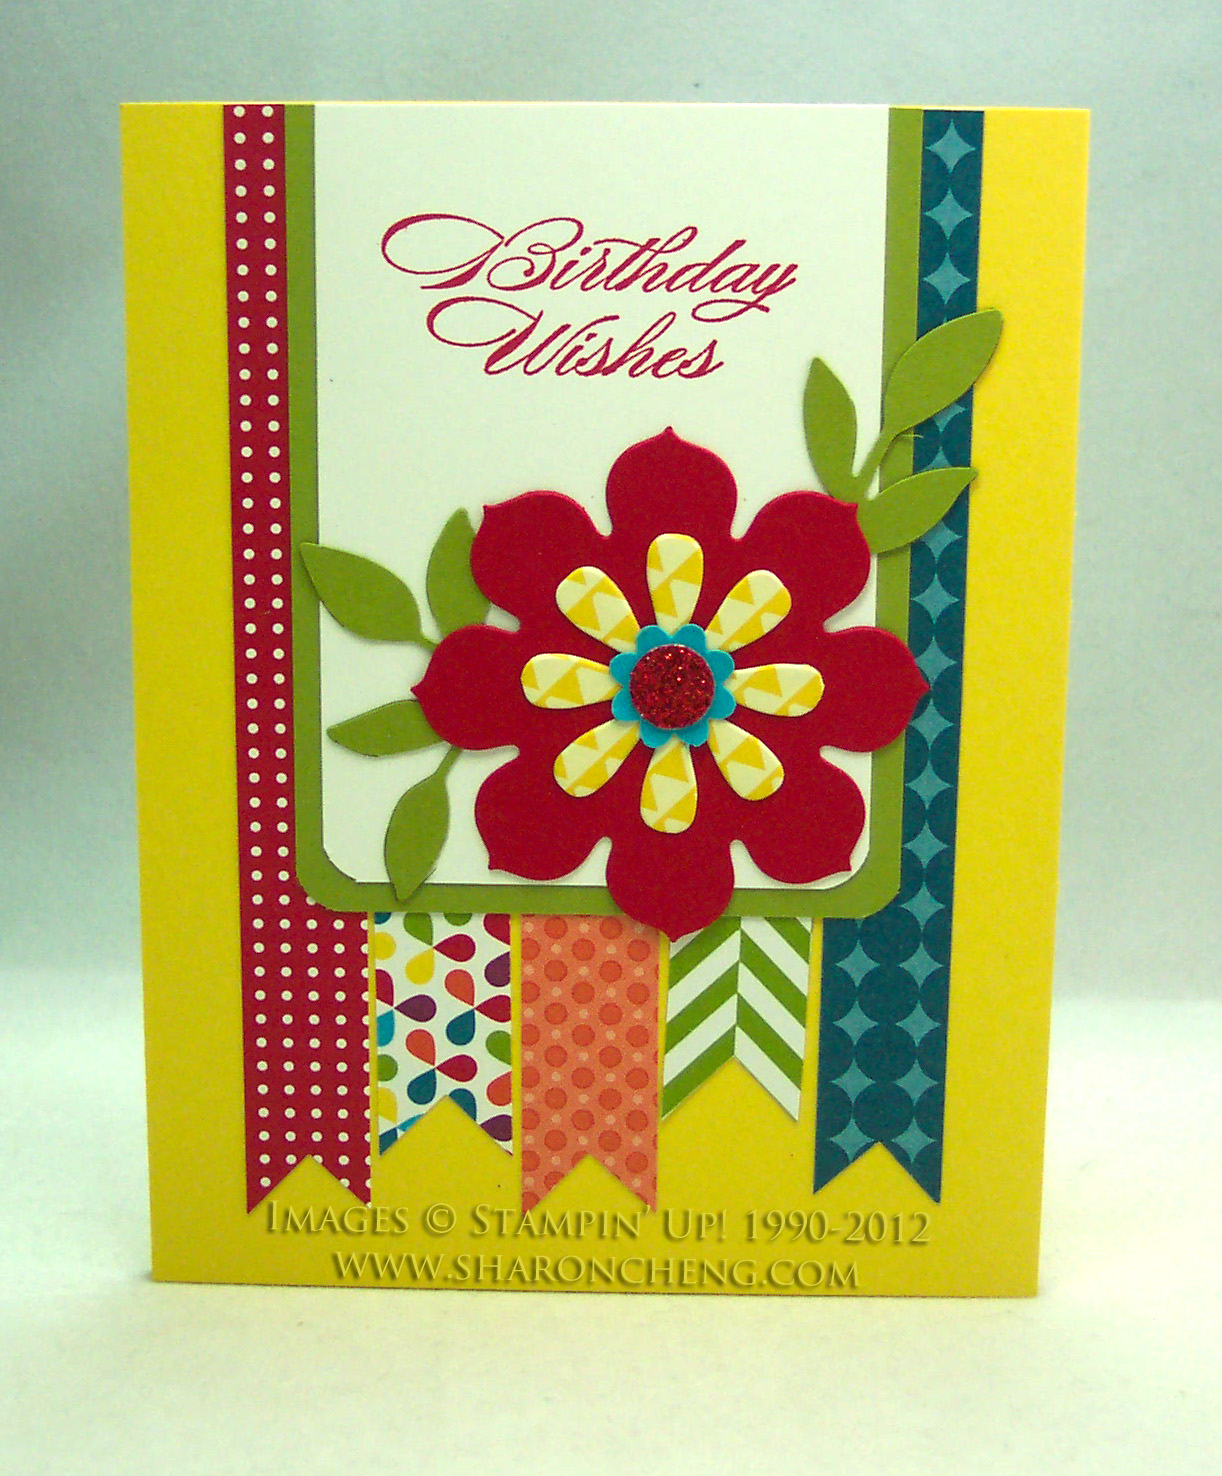 Sharing creativity and company 71512 72212 im off to stampin ups convention in salt lake city later this morning i wanted to share two of my swap cards swap cards are like trading cards for kristyandbryce Image collections